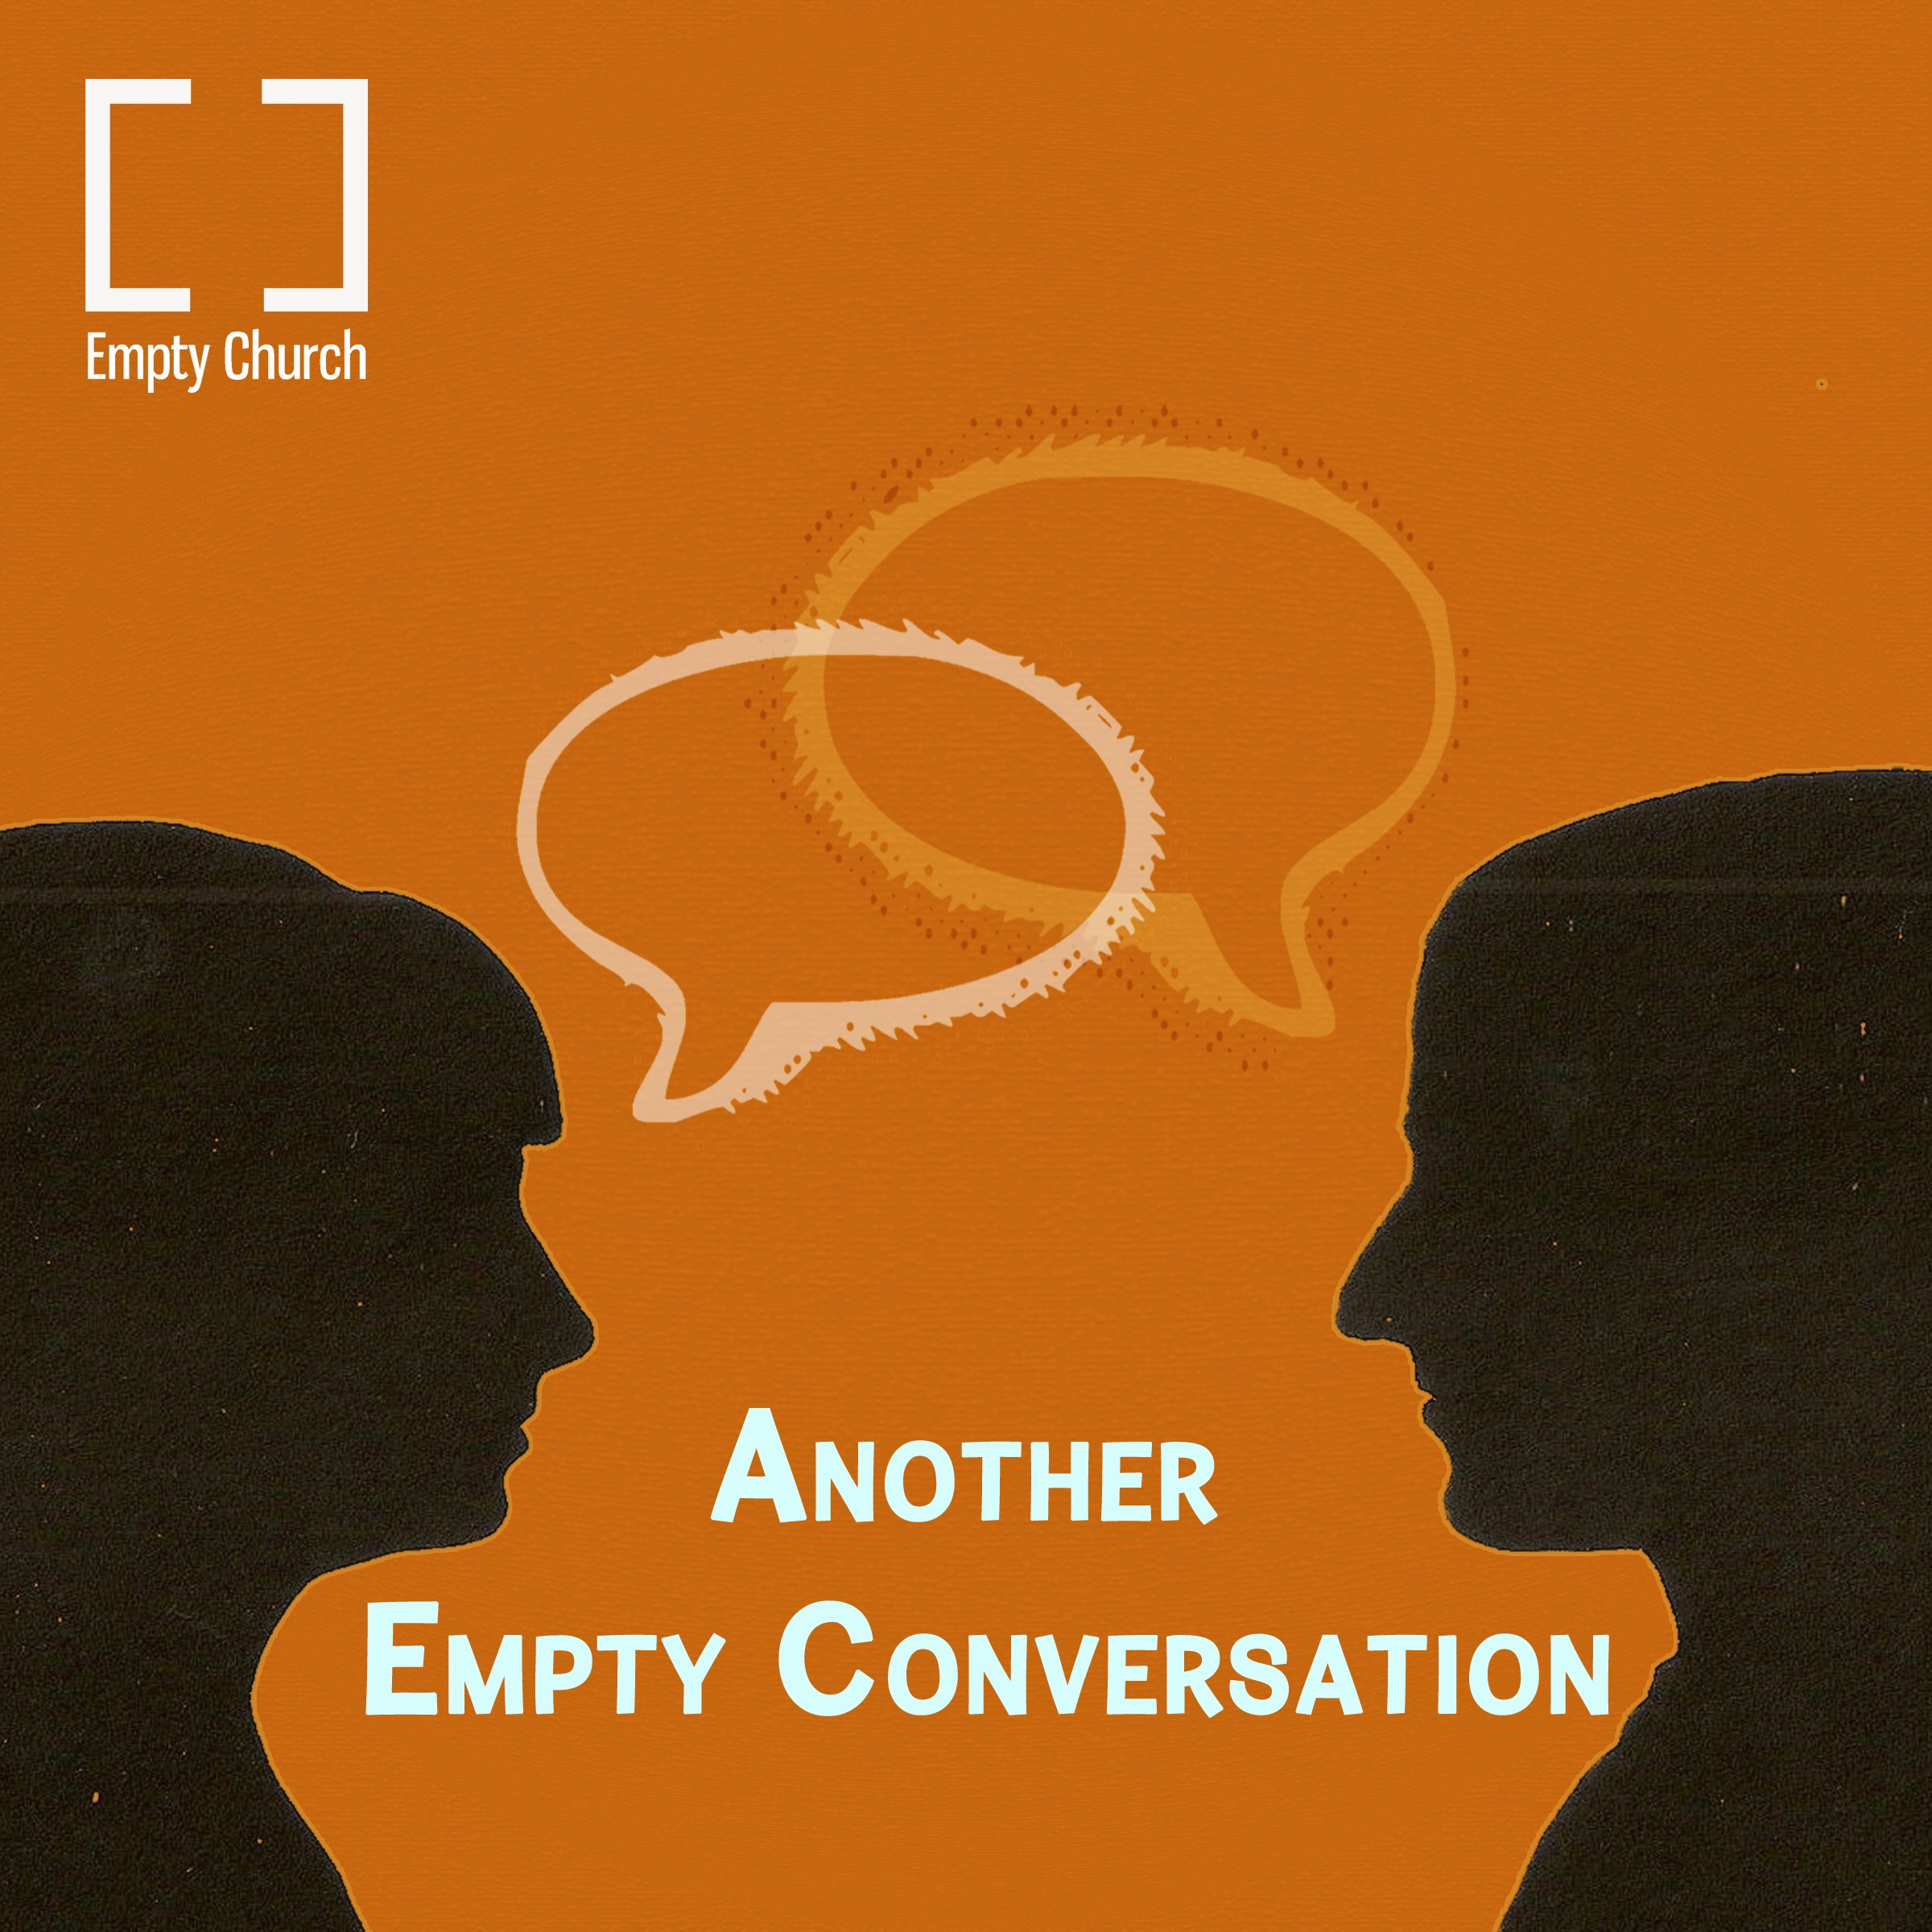 Another Empty Conversation